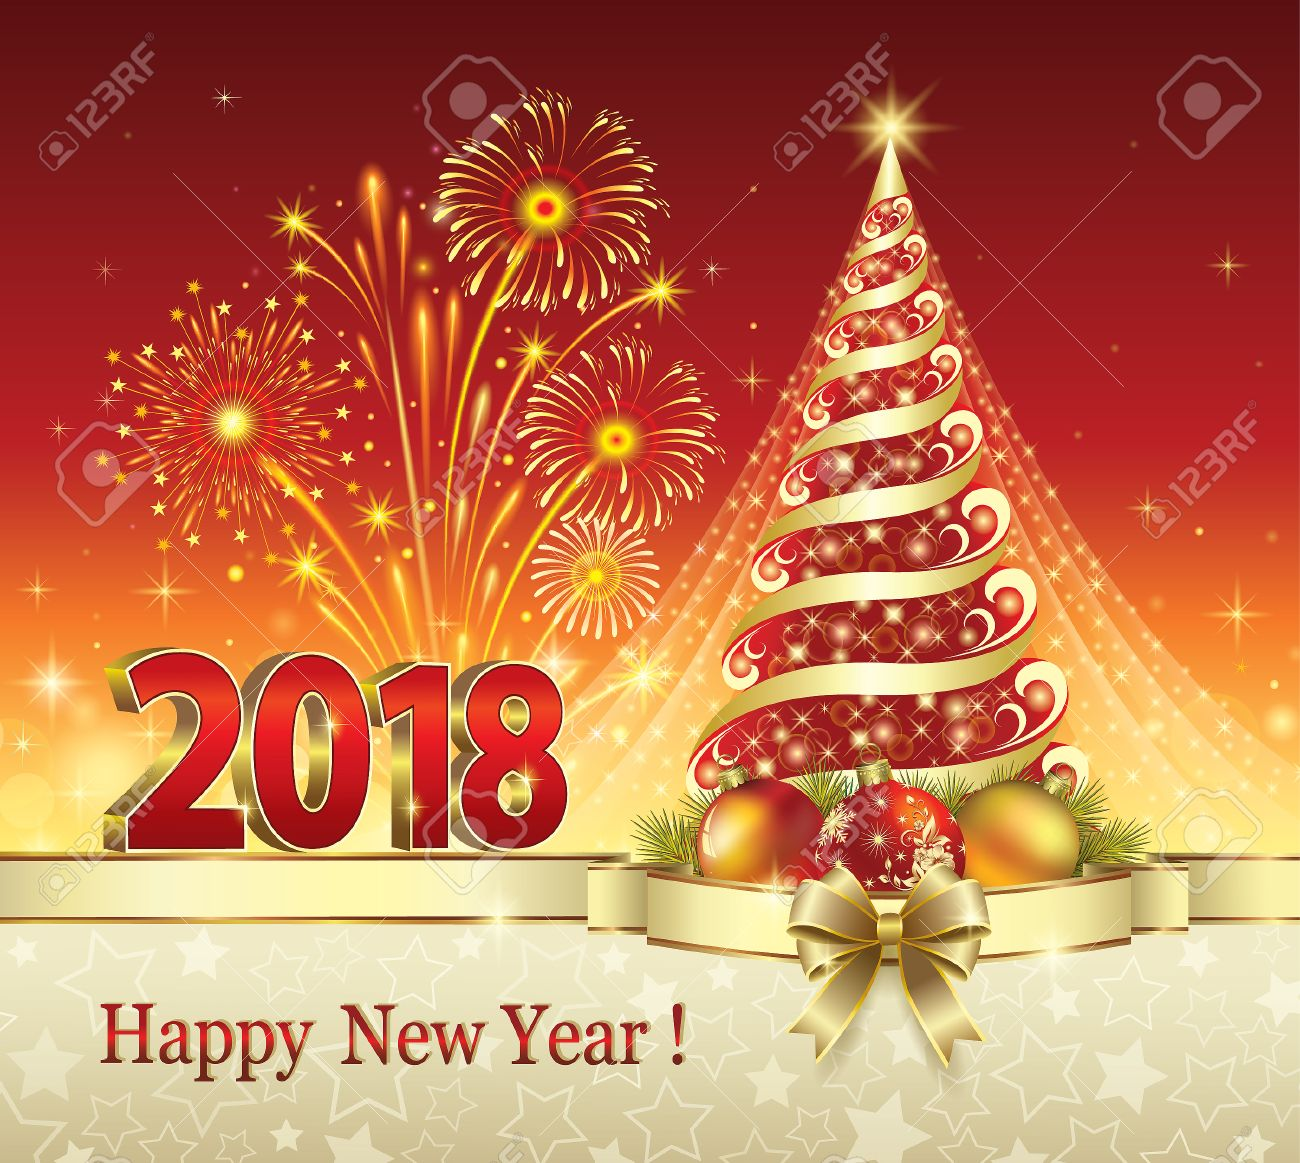 postcard happy new year 2018 with a christmas tree stock vector 82671480